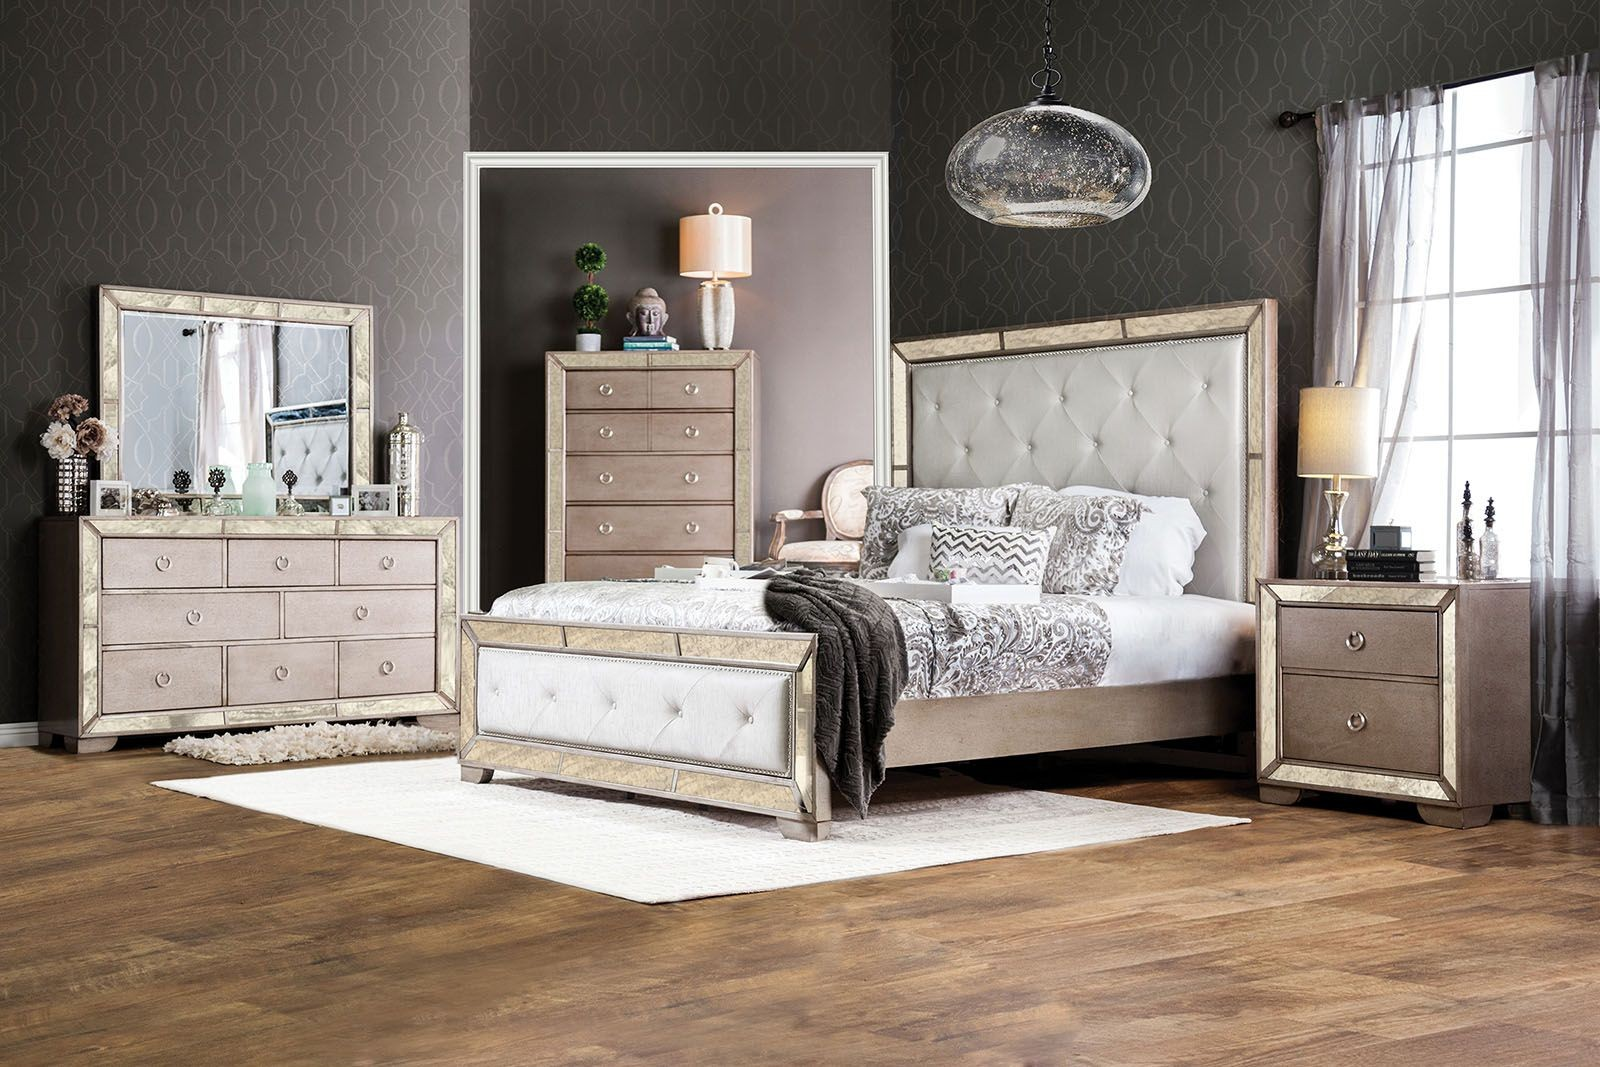 silver snow bedroom set photo - 10